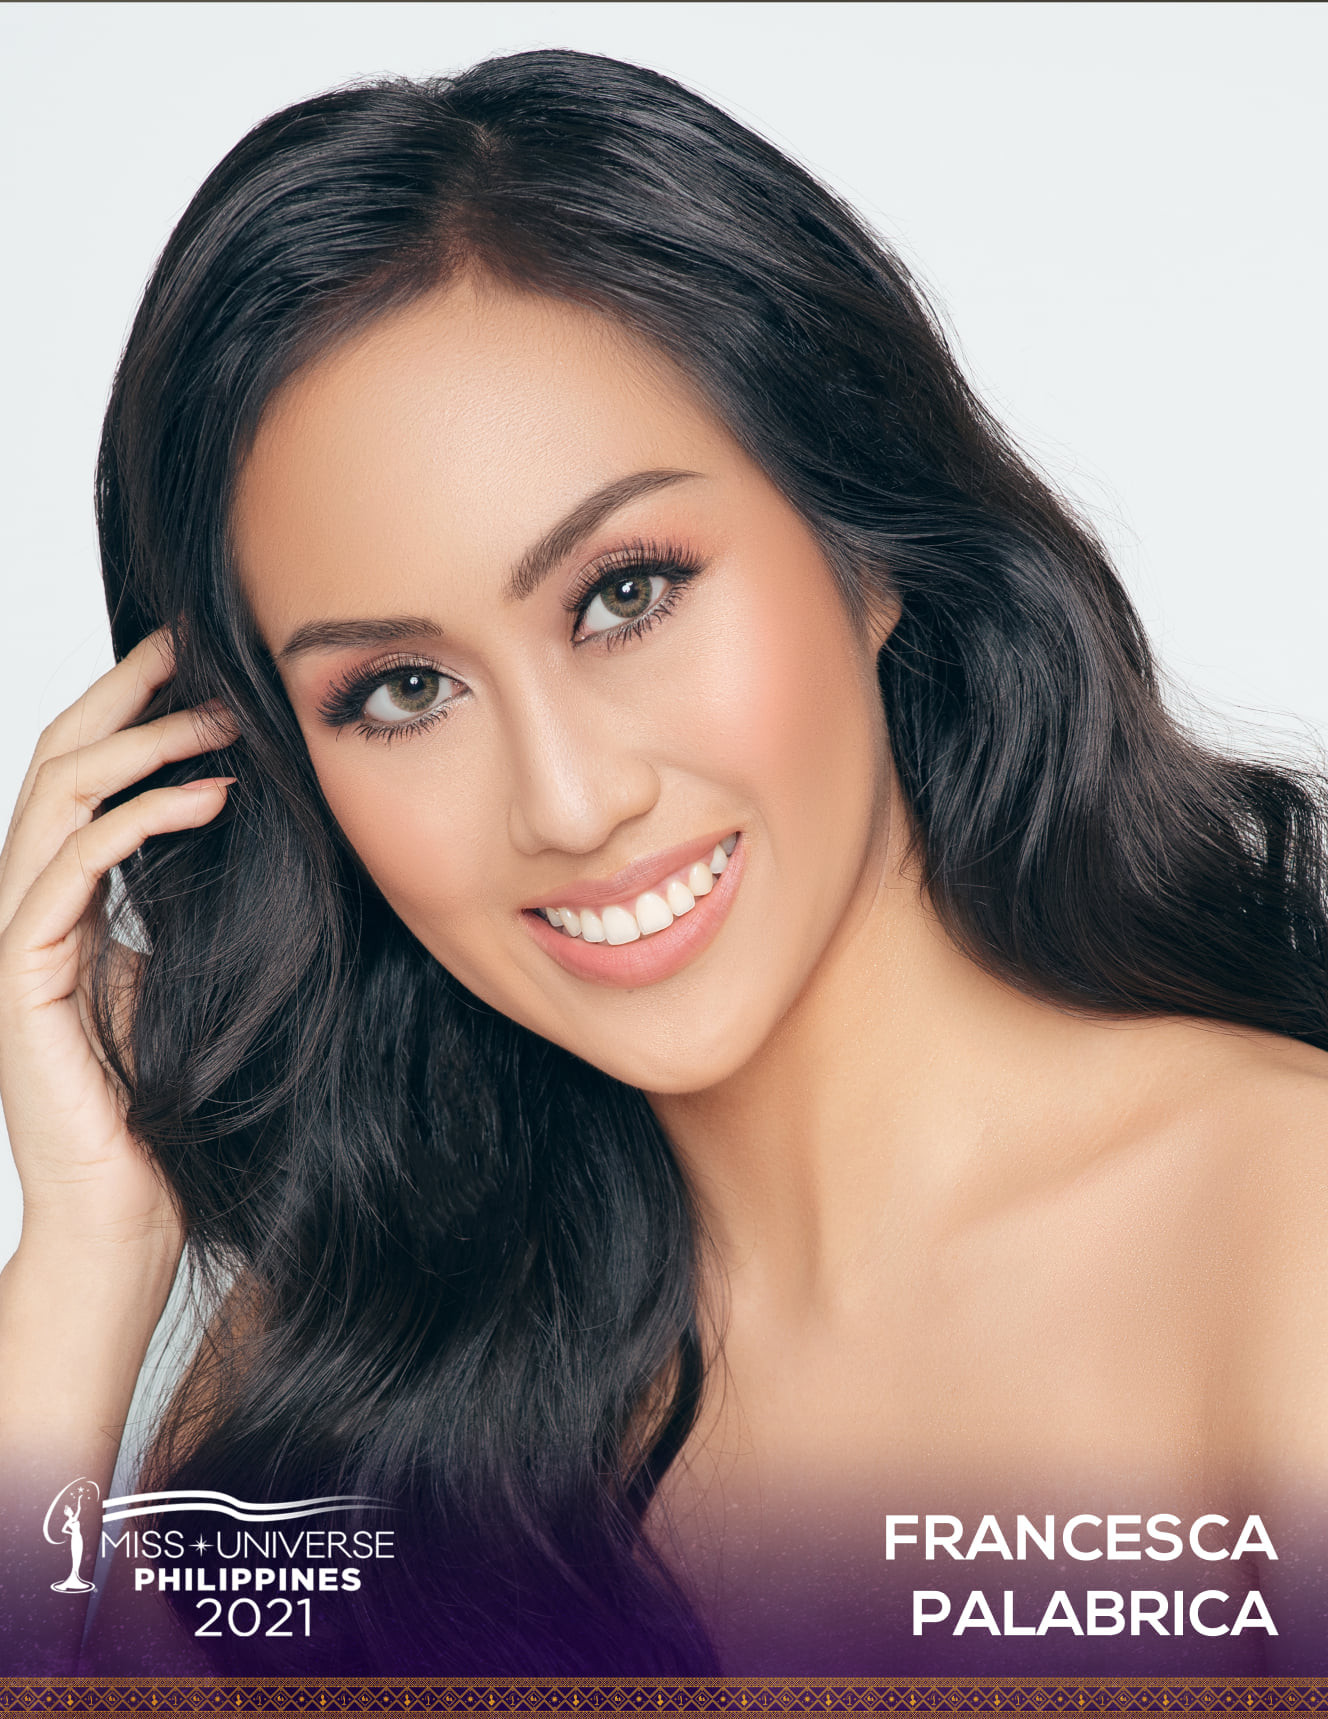 pre-candidatas a miss universe philippines 2021. AlKJKN